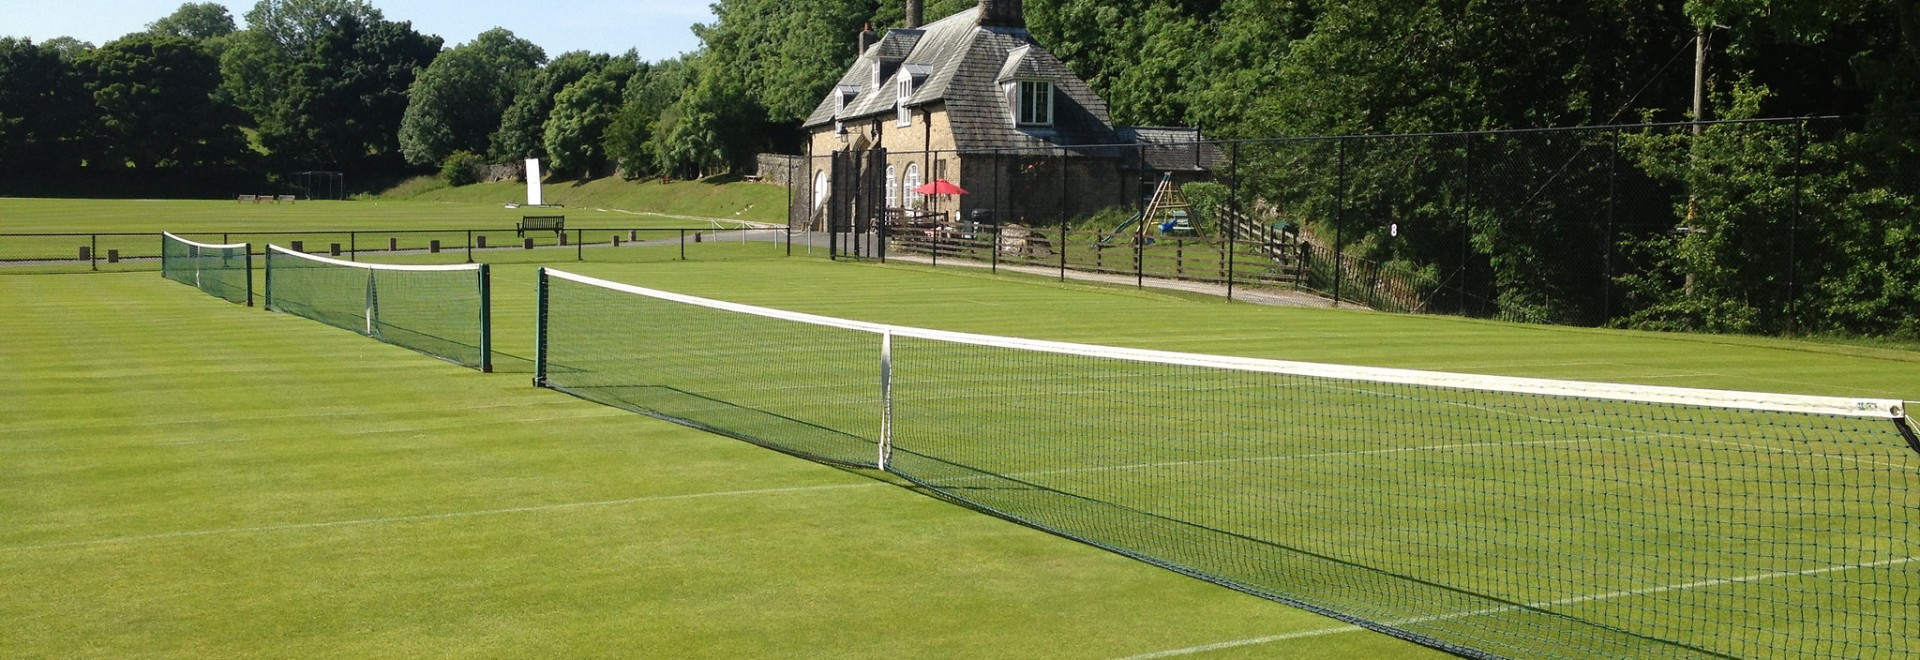 Giggleswick School, Yorkshire - Book. Travel. Play.